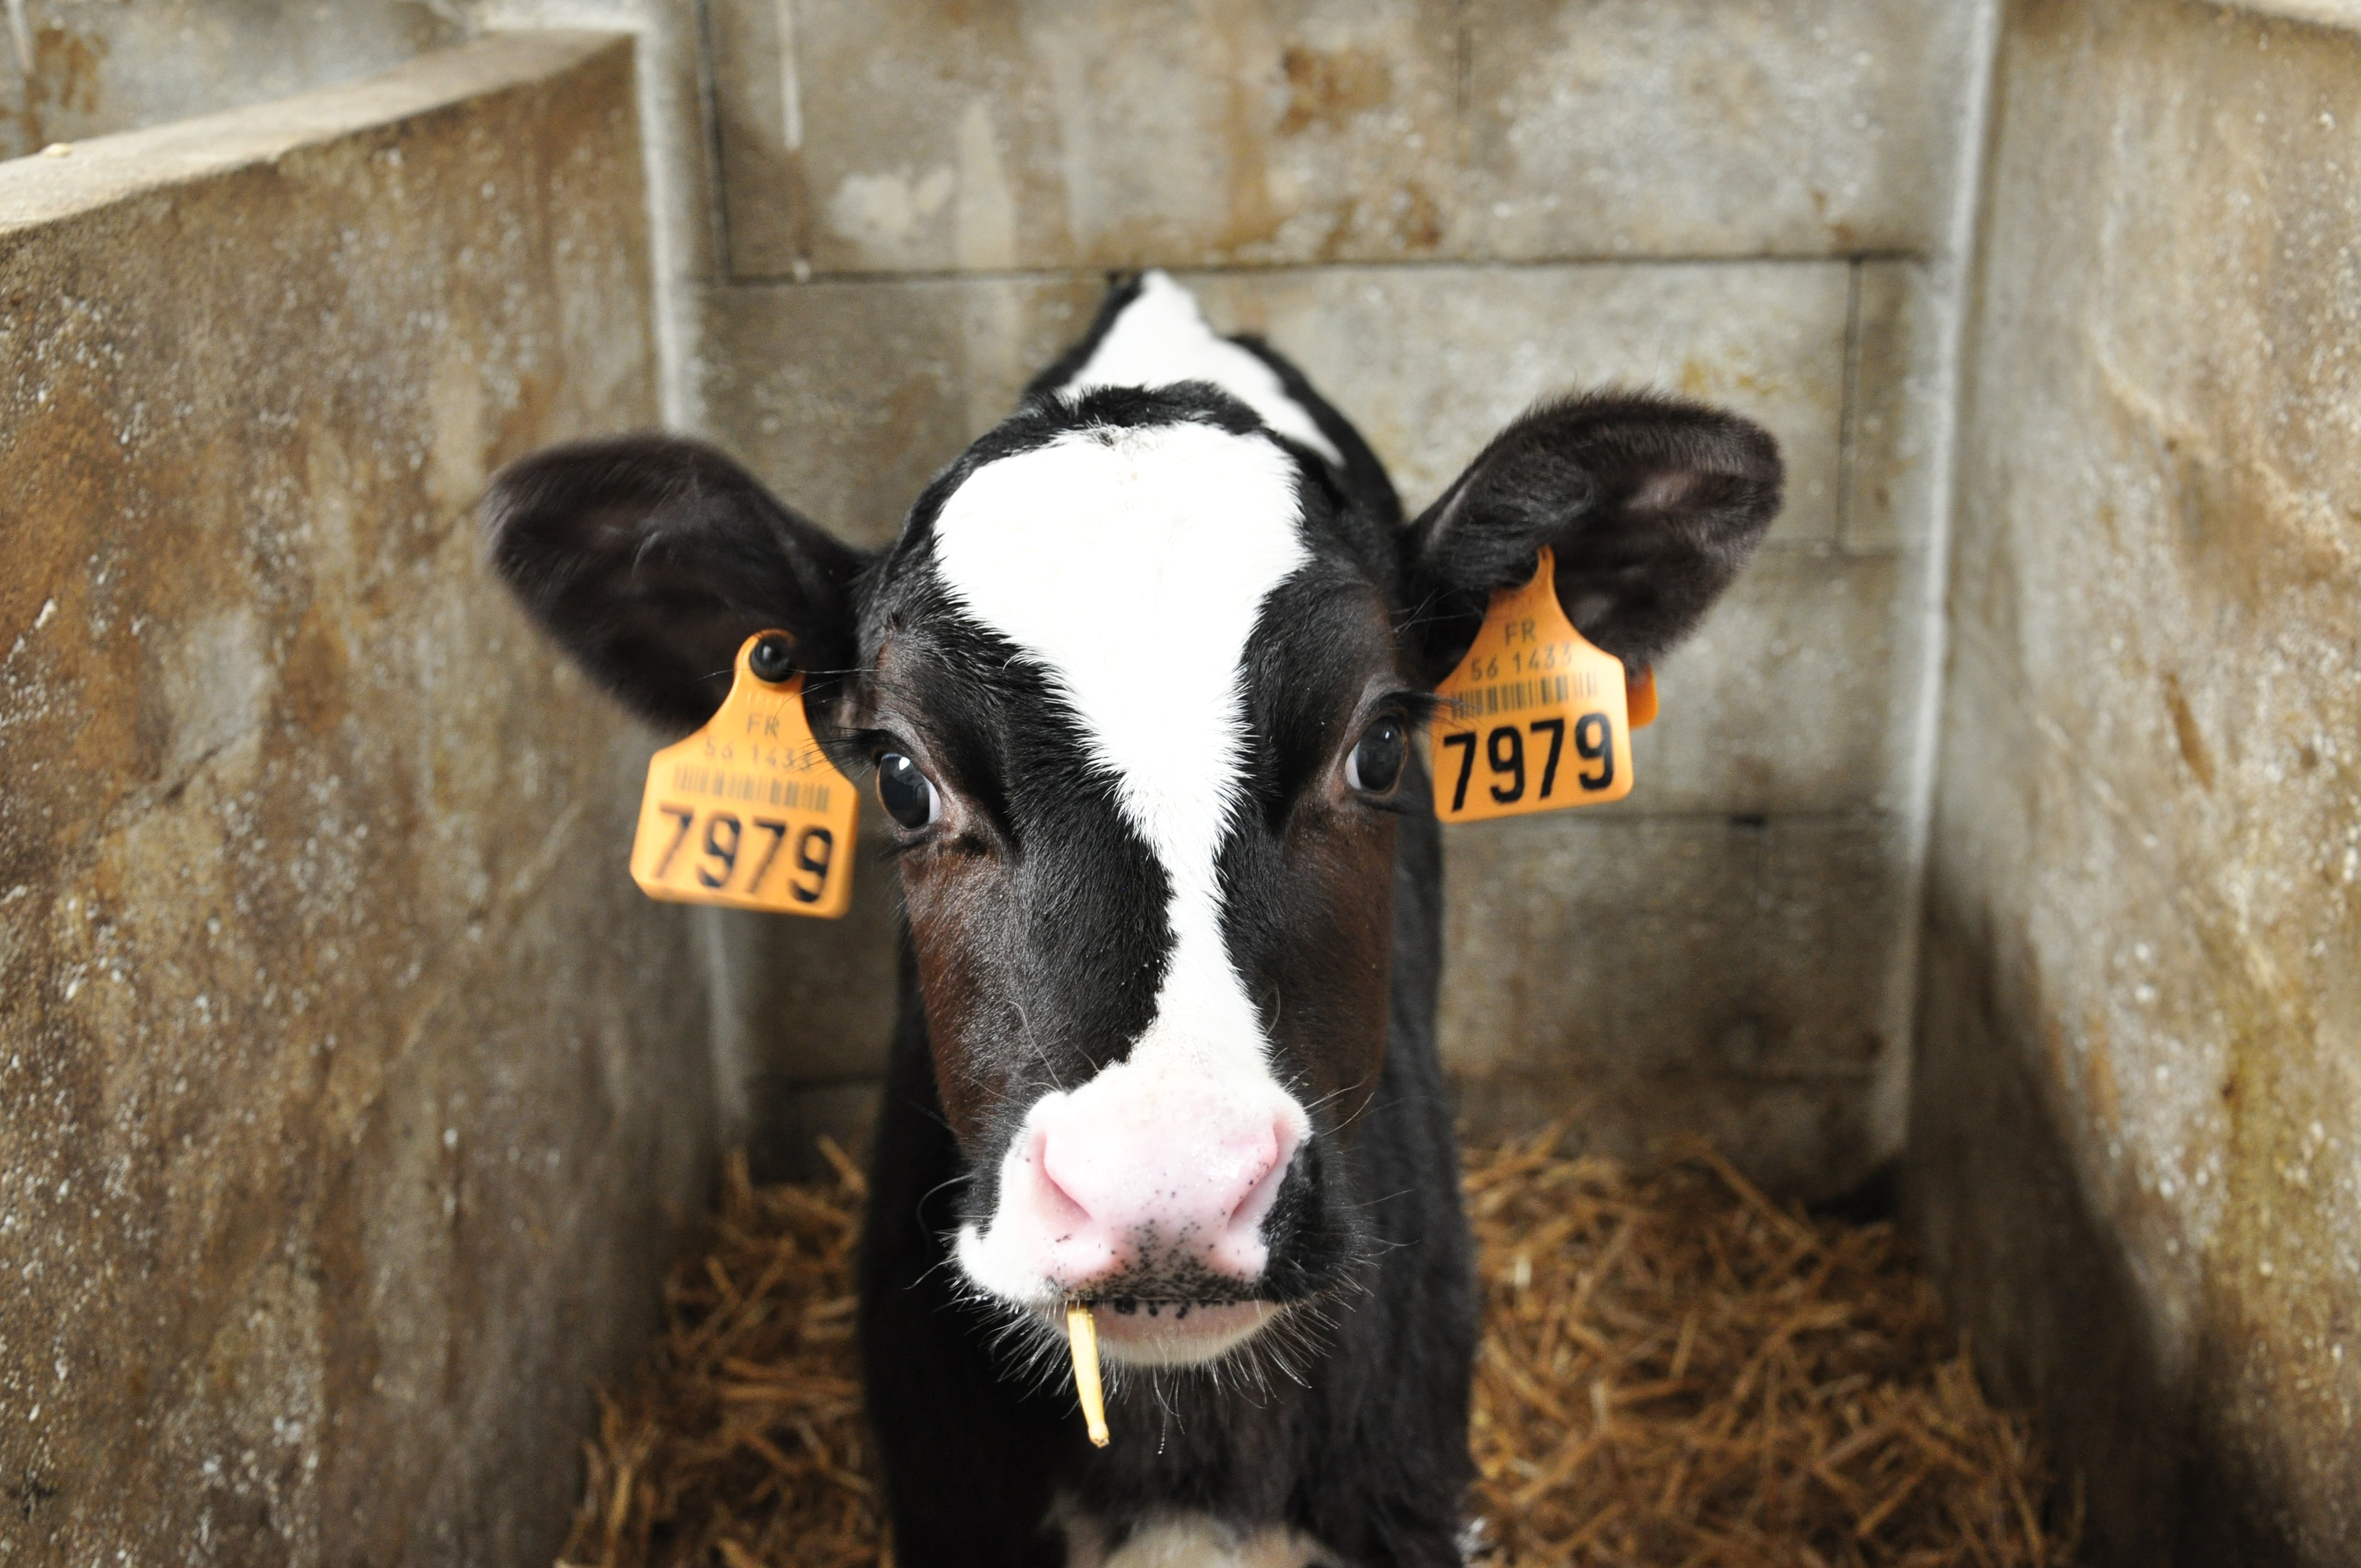 white and black cattle with number 7979 tags